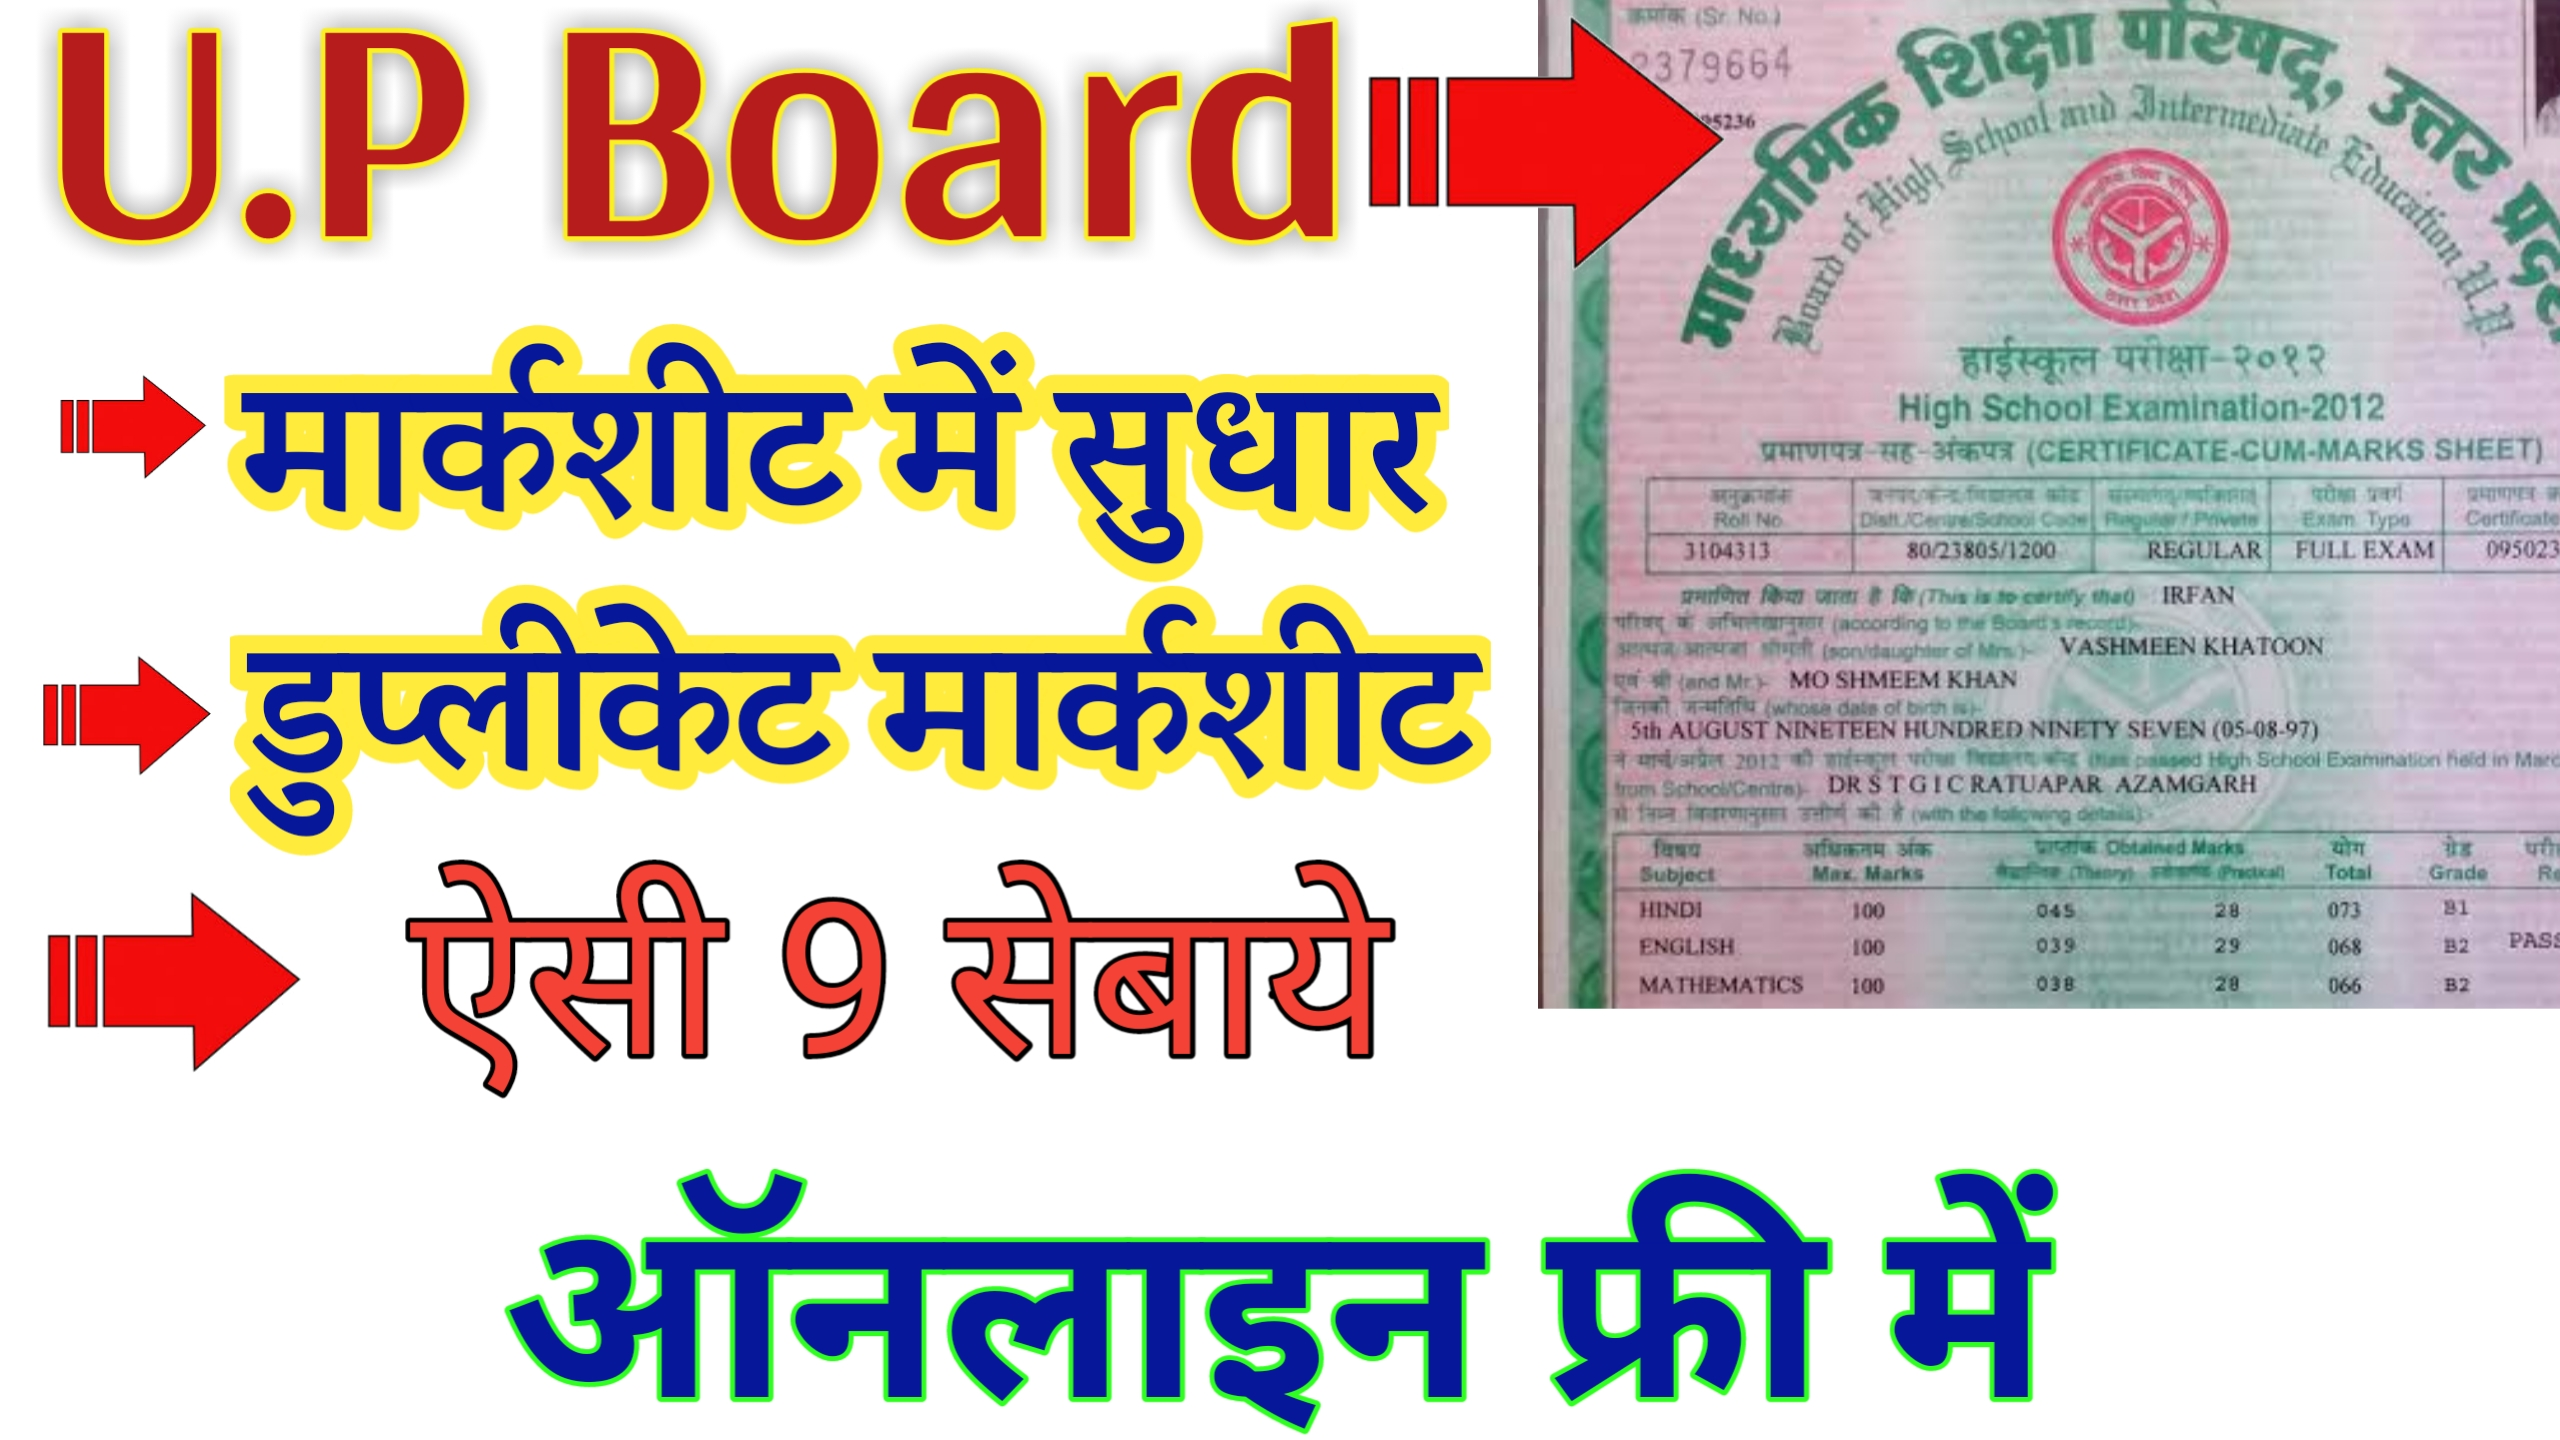 UP Board 10th ,12th marksheet download and correction online free using UPMSP SERVICE